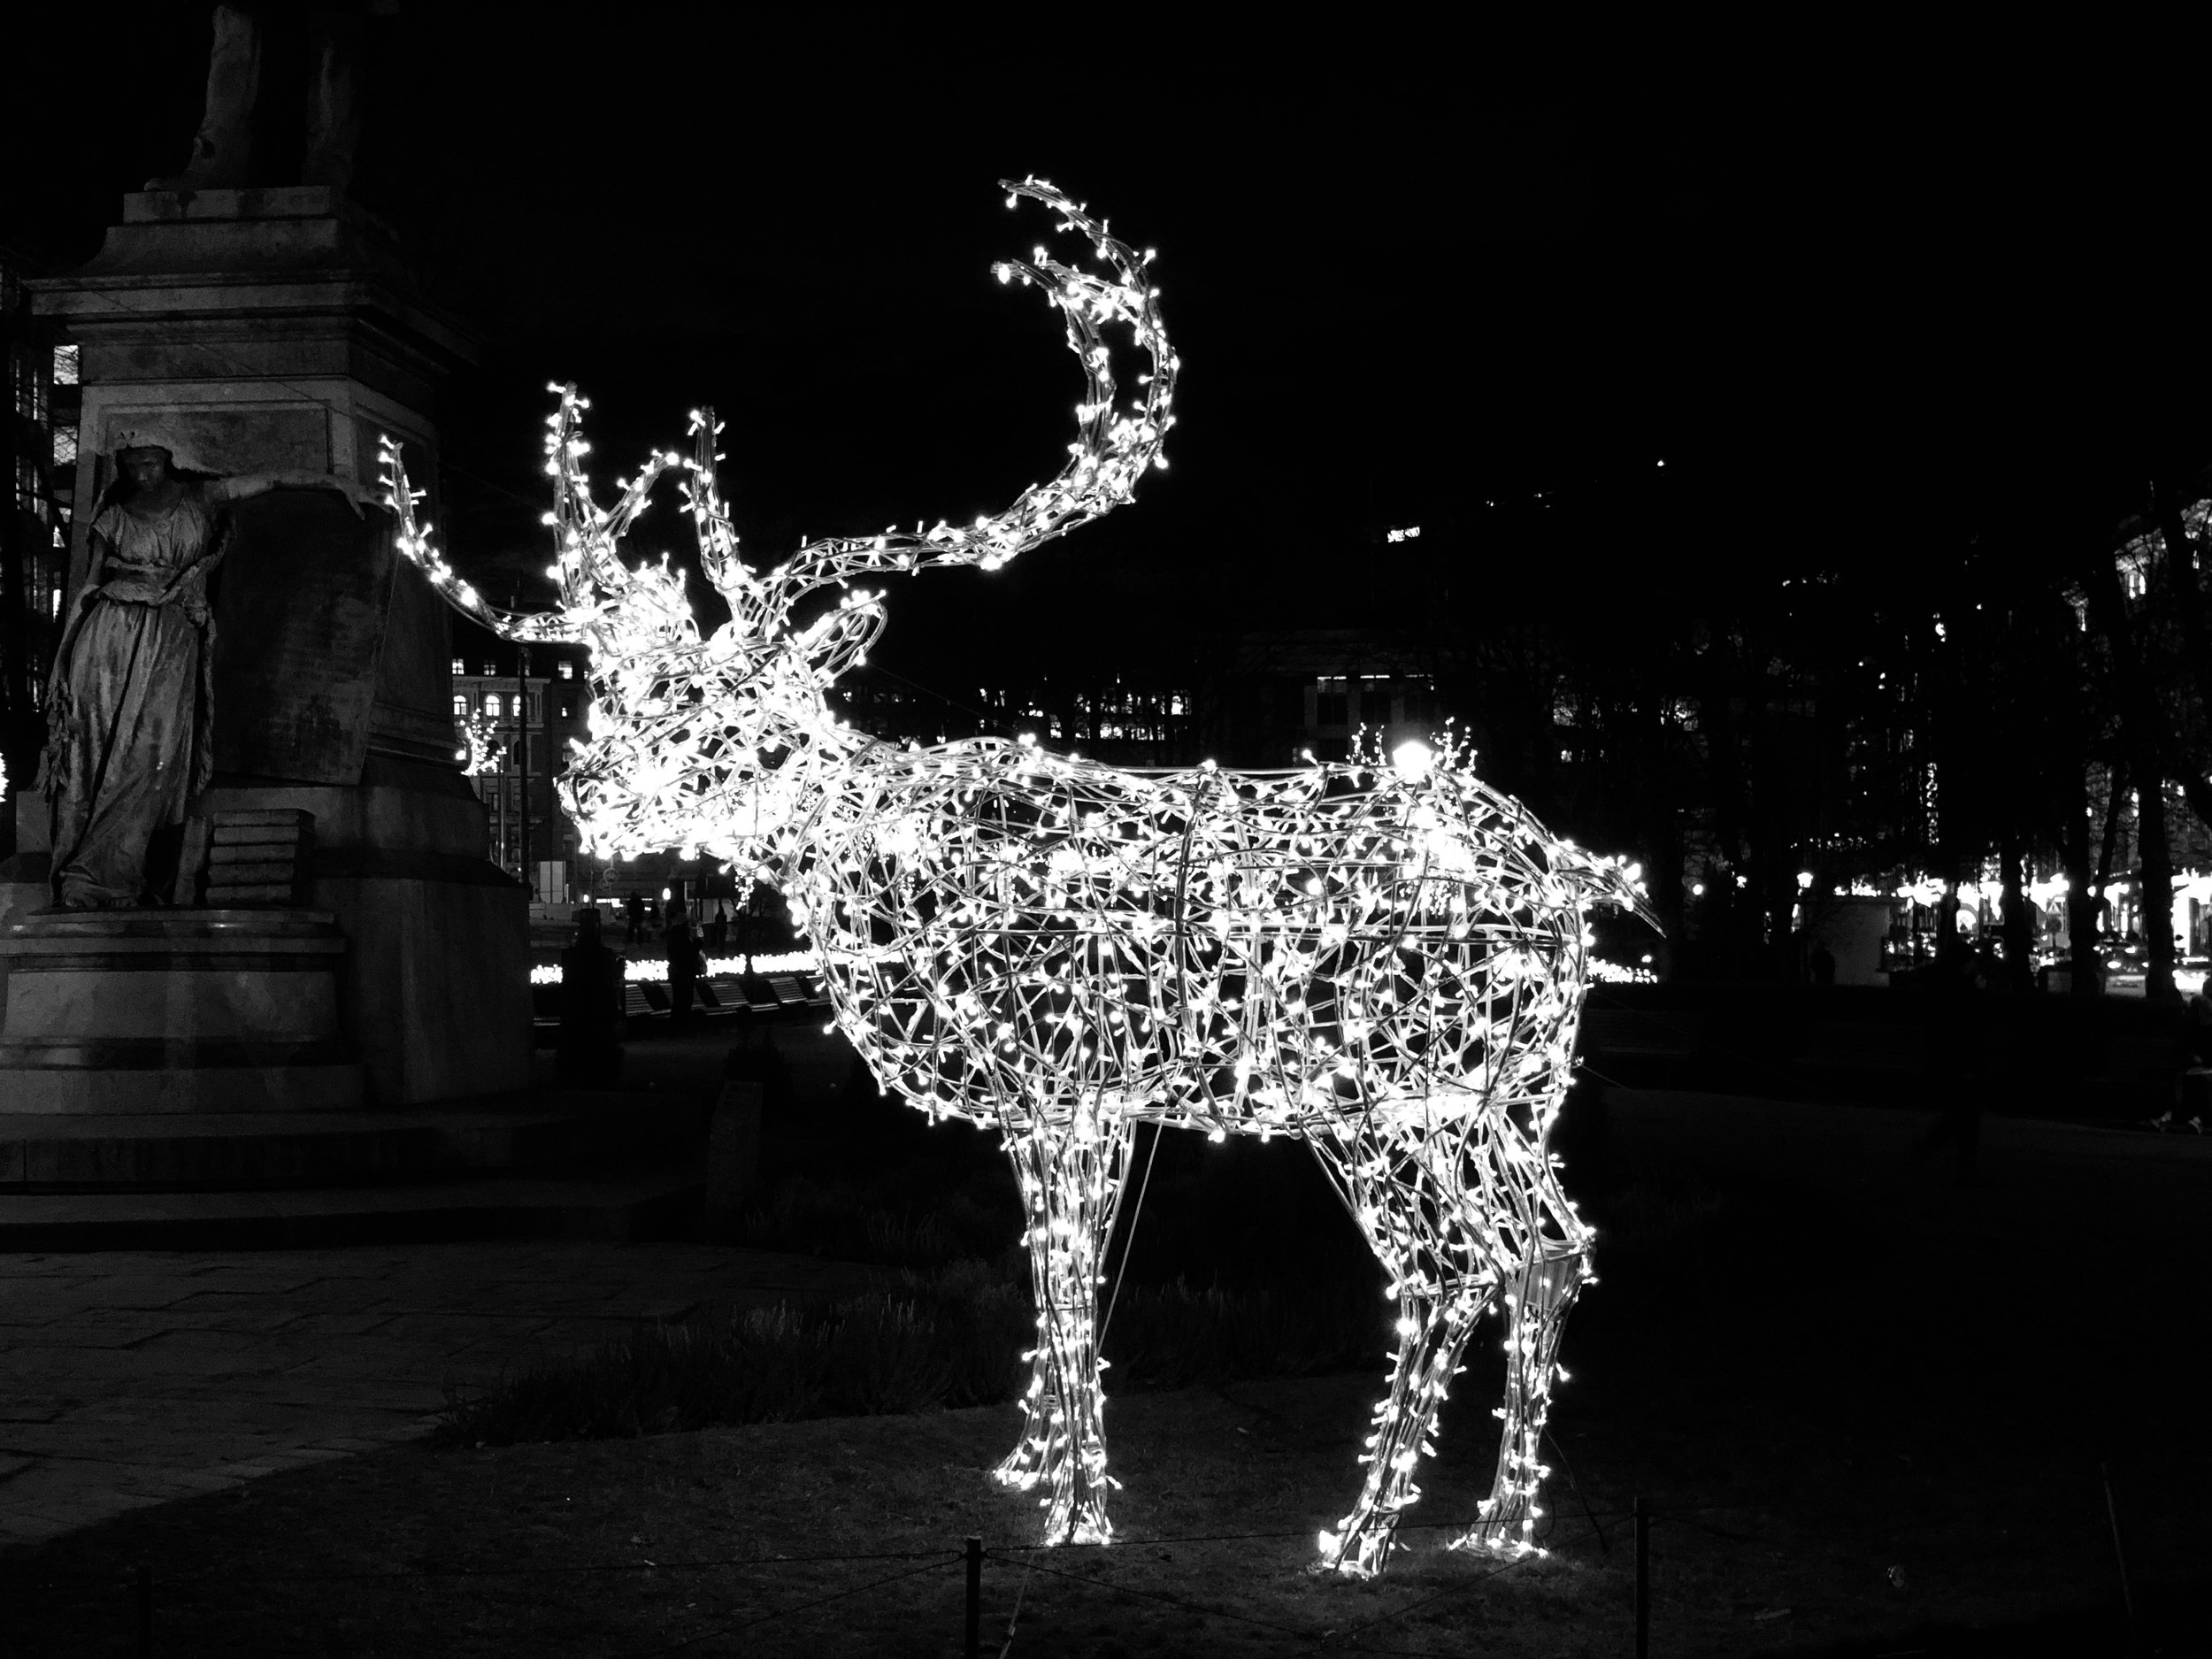 Finland - Reindeer in the city! In December, the urban park, Esplanadi - or Espa as the locals call it - is beautifully decorated and illuminated for the holiday season. The Esplanadi is the heart of the city and where you will find plenty of shops and nice restaurants.Photo by Miriam Bourin/Global Local Traveler